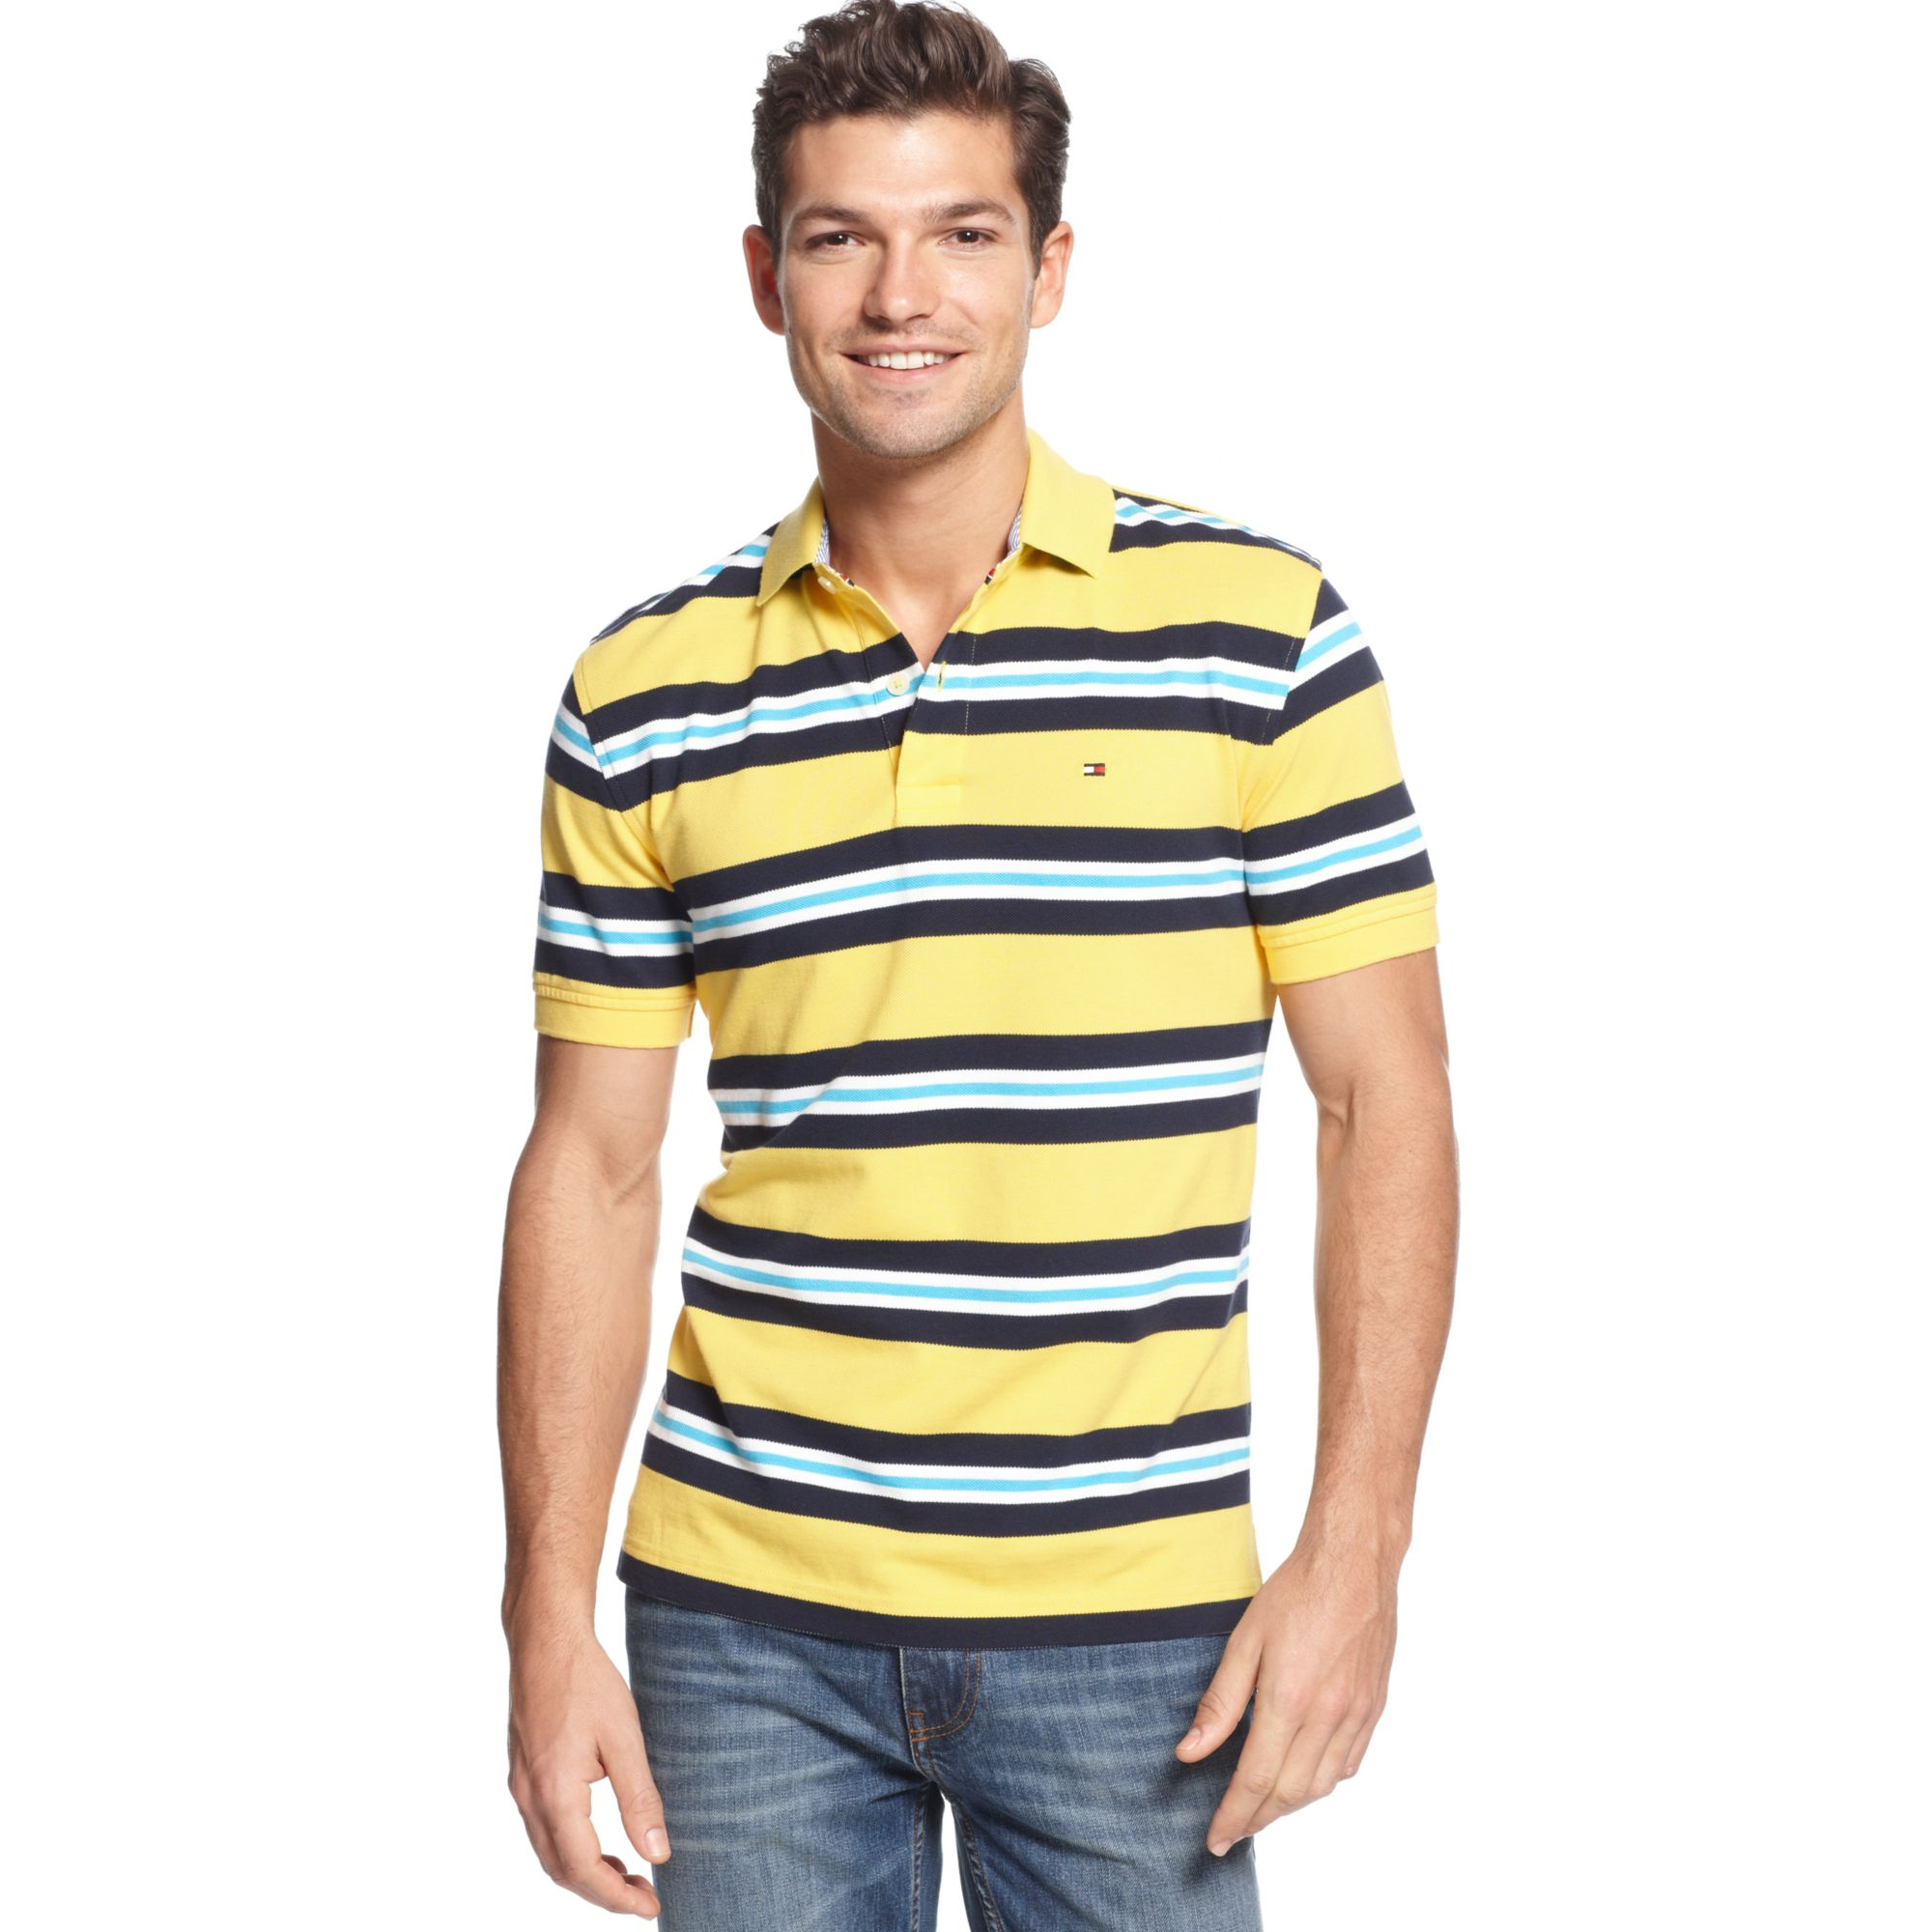 tommy hilfiger millford polo shirt in yellow for men taxi. Black Bedroom Furniture Sets. Home Design Ideas